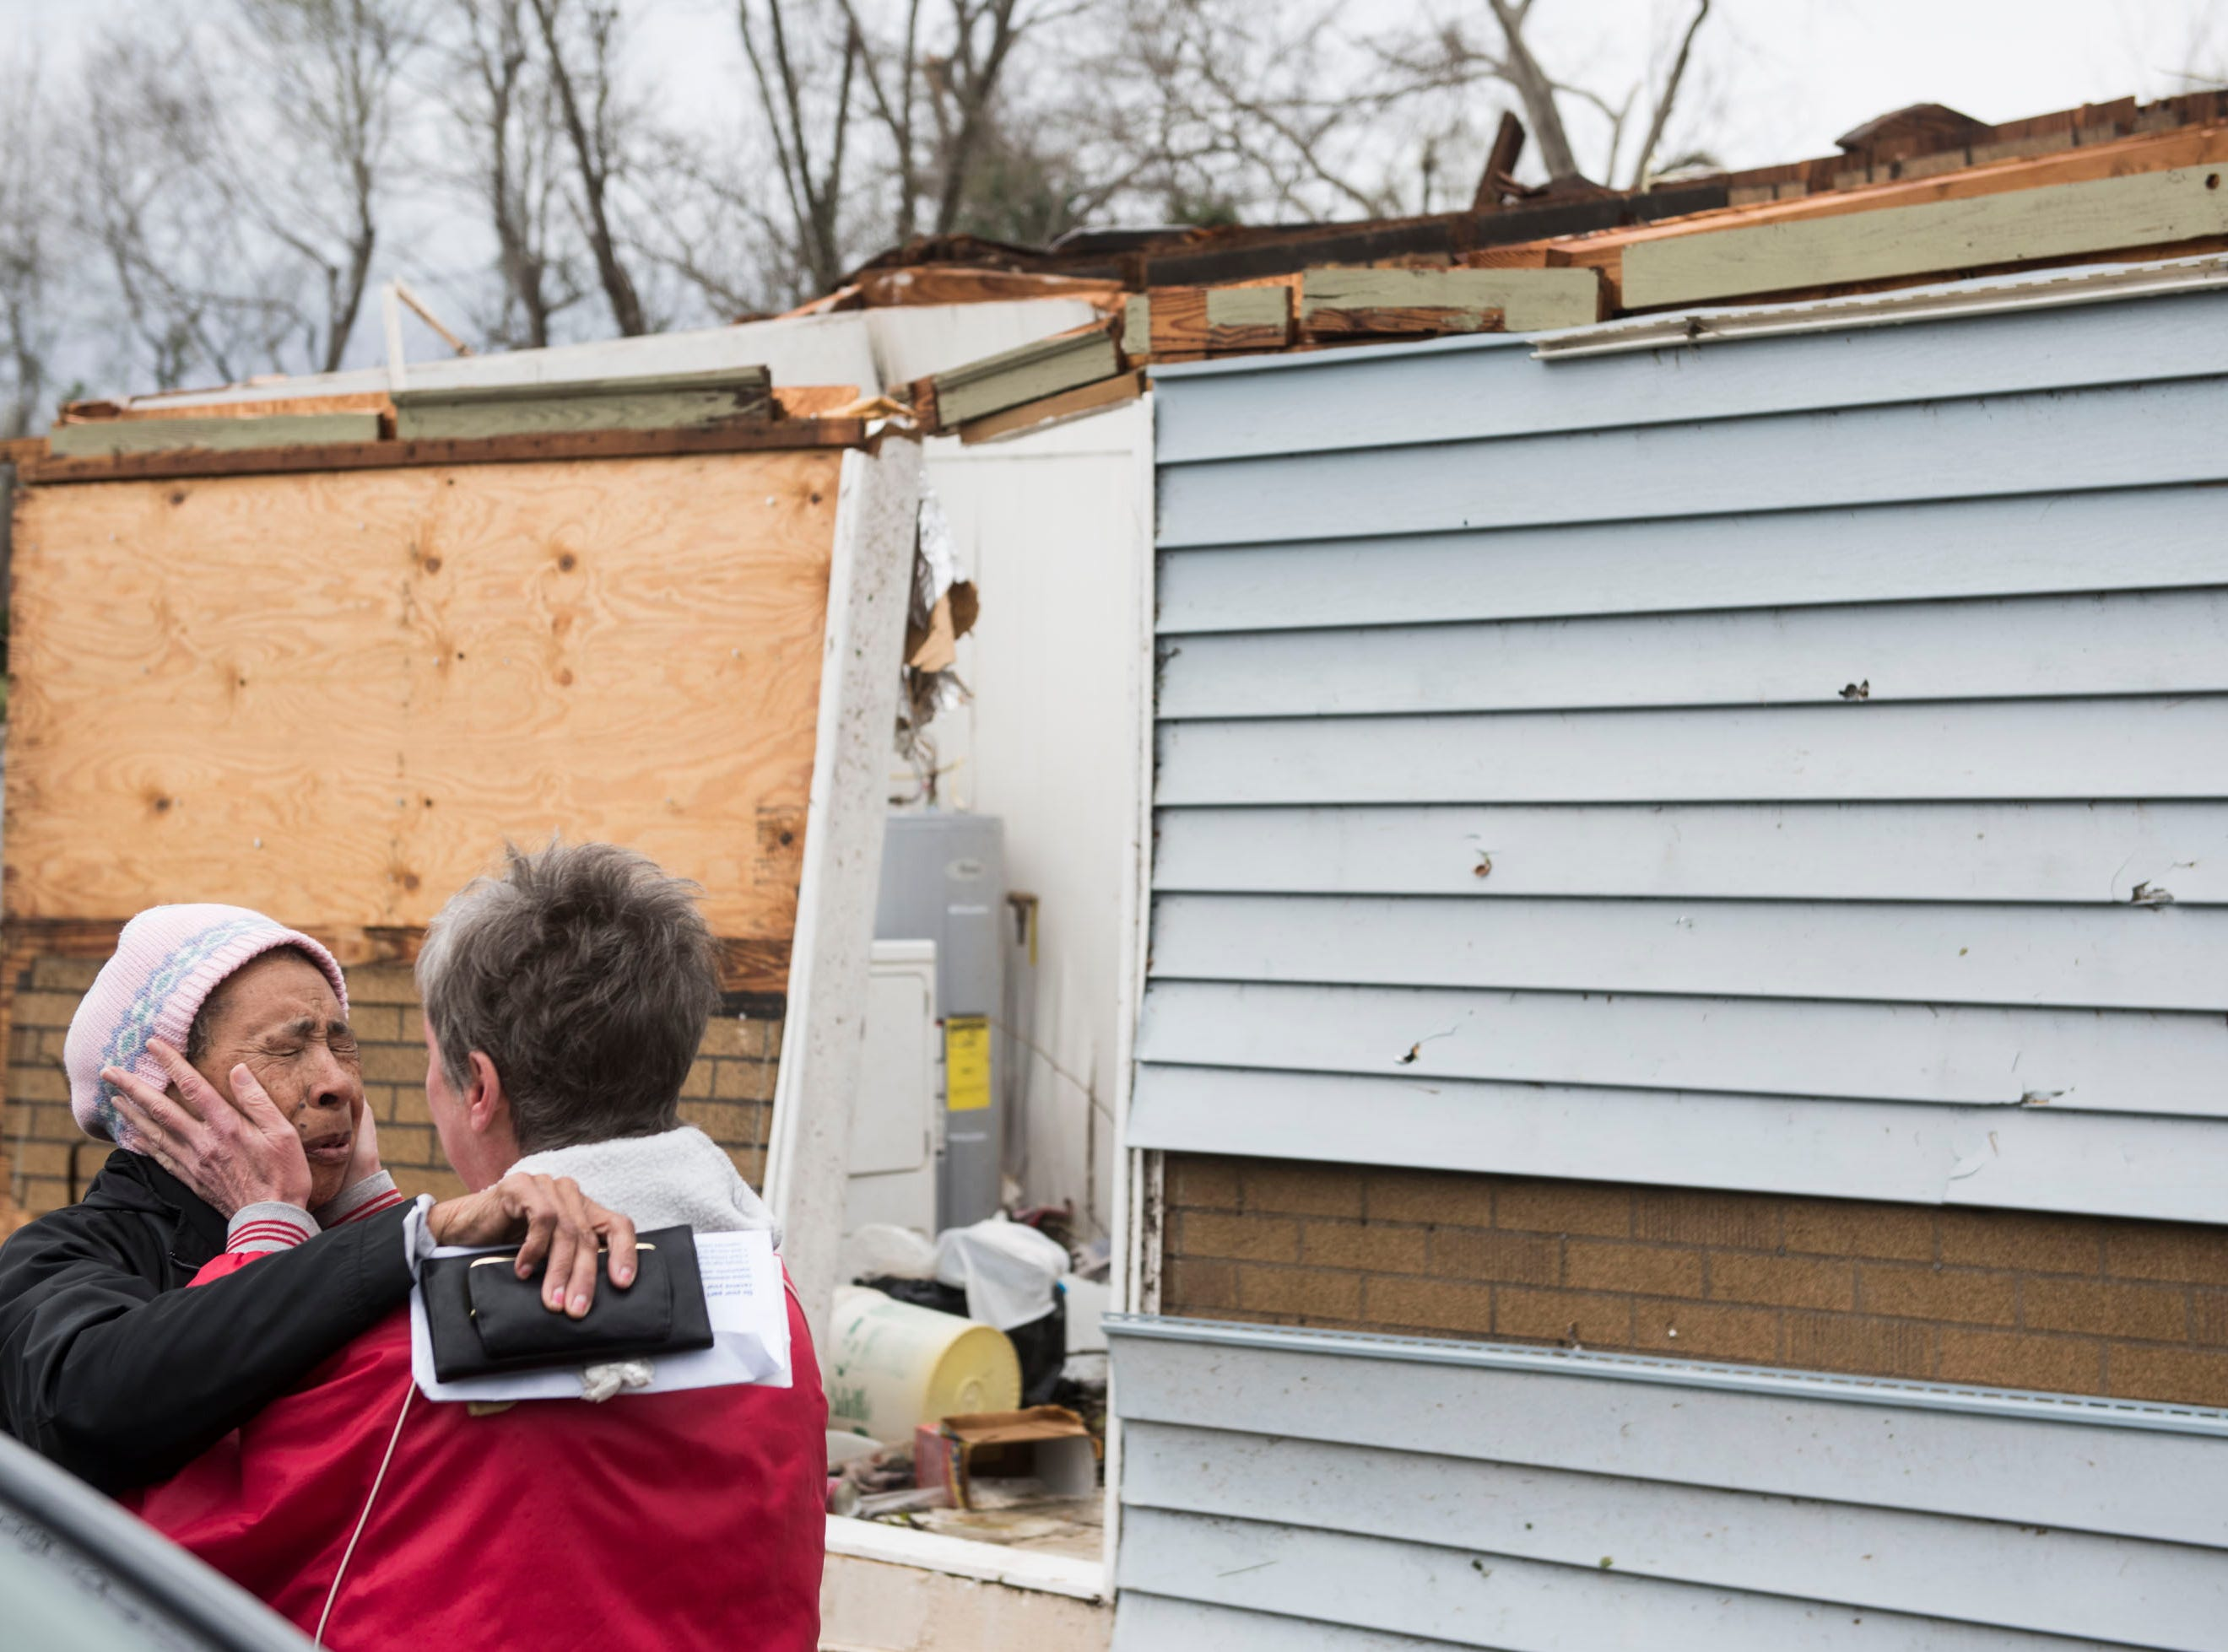 Neighbors Arcuqila Pearson, left, and Beverly Guerin hug in front of Pearson's tornado damaged house in Titus, Ala., on Friday, March 15, 2019.